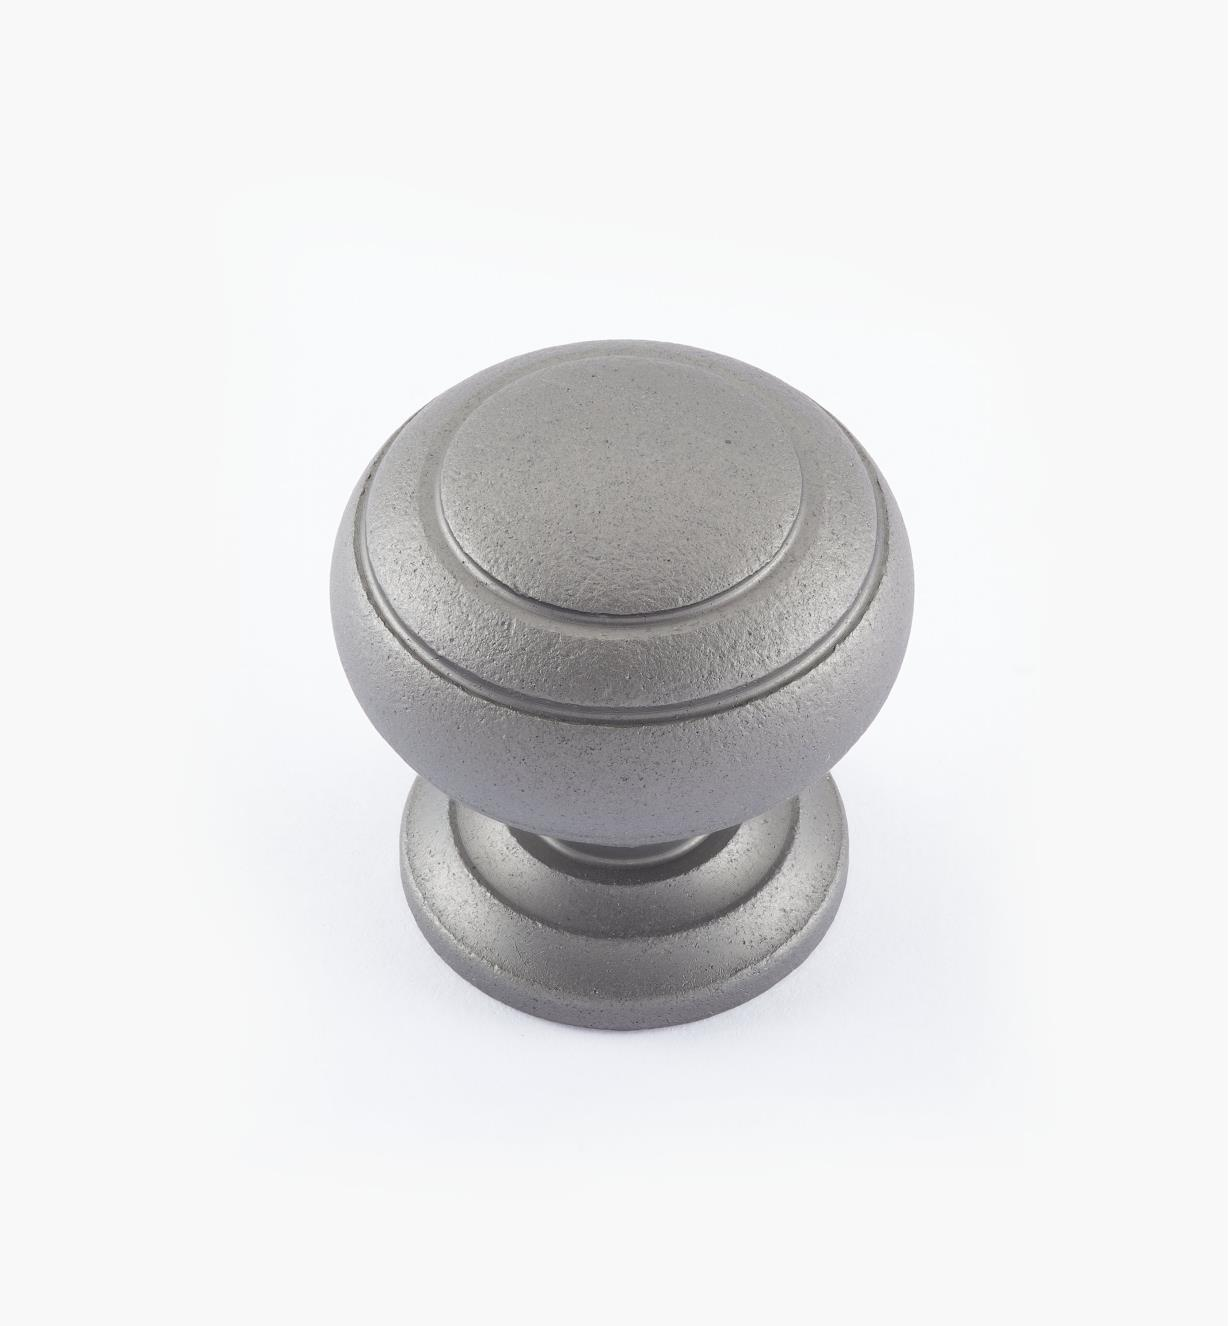 "02W3326 - Pewter Suite - 1 1/4"" x 1 1/4"" Turned Brass Ring Knob"